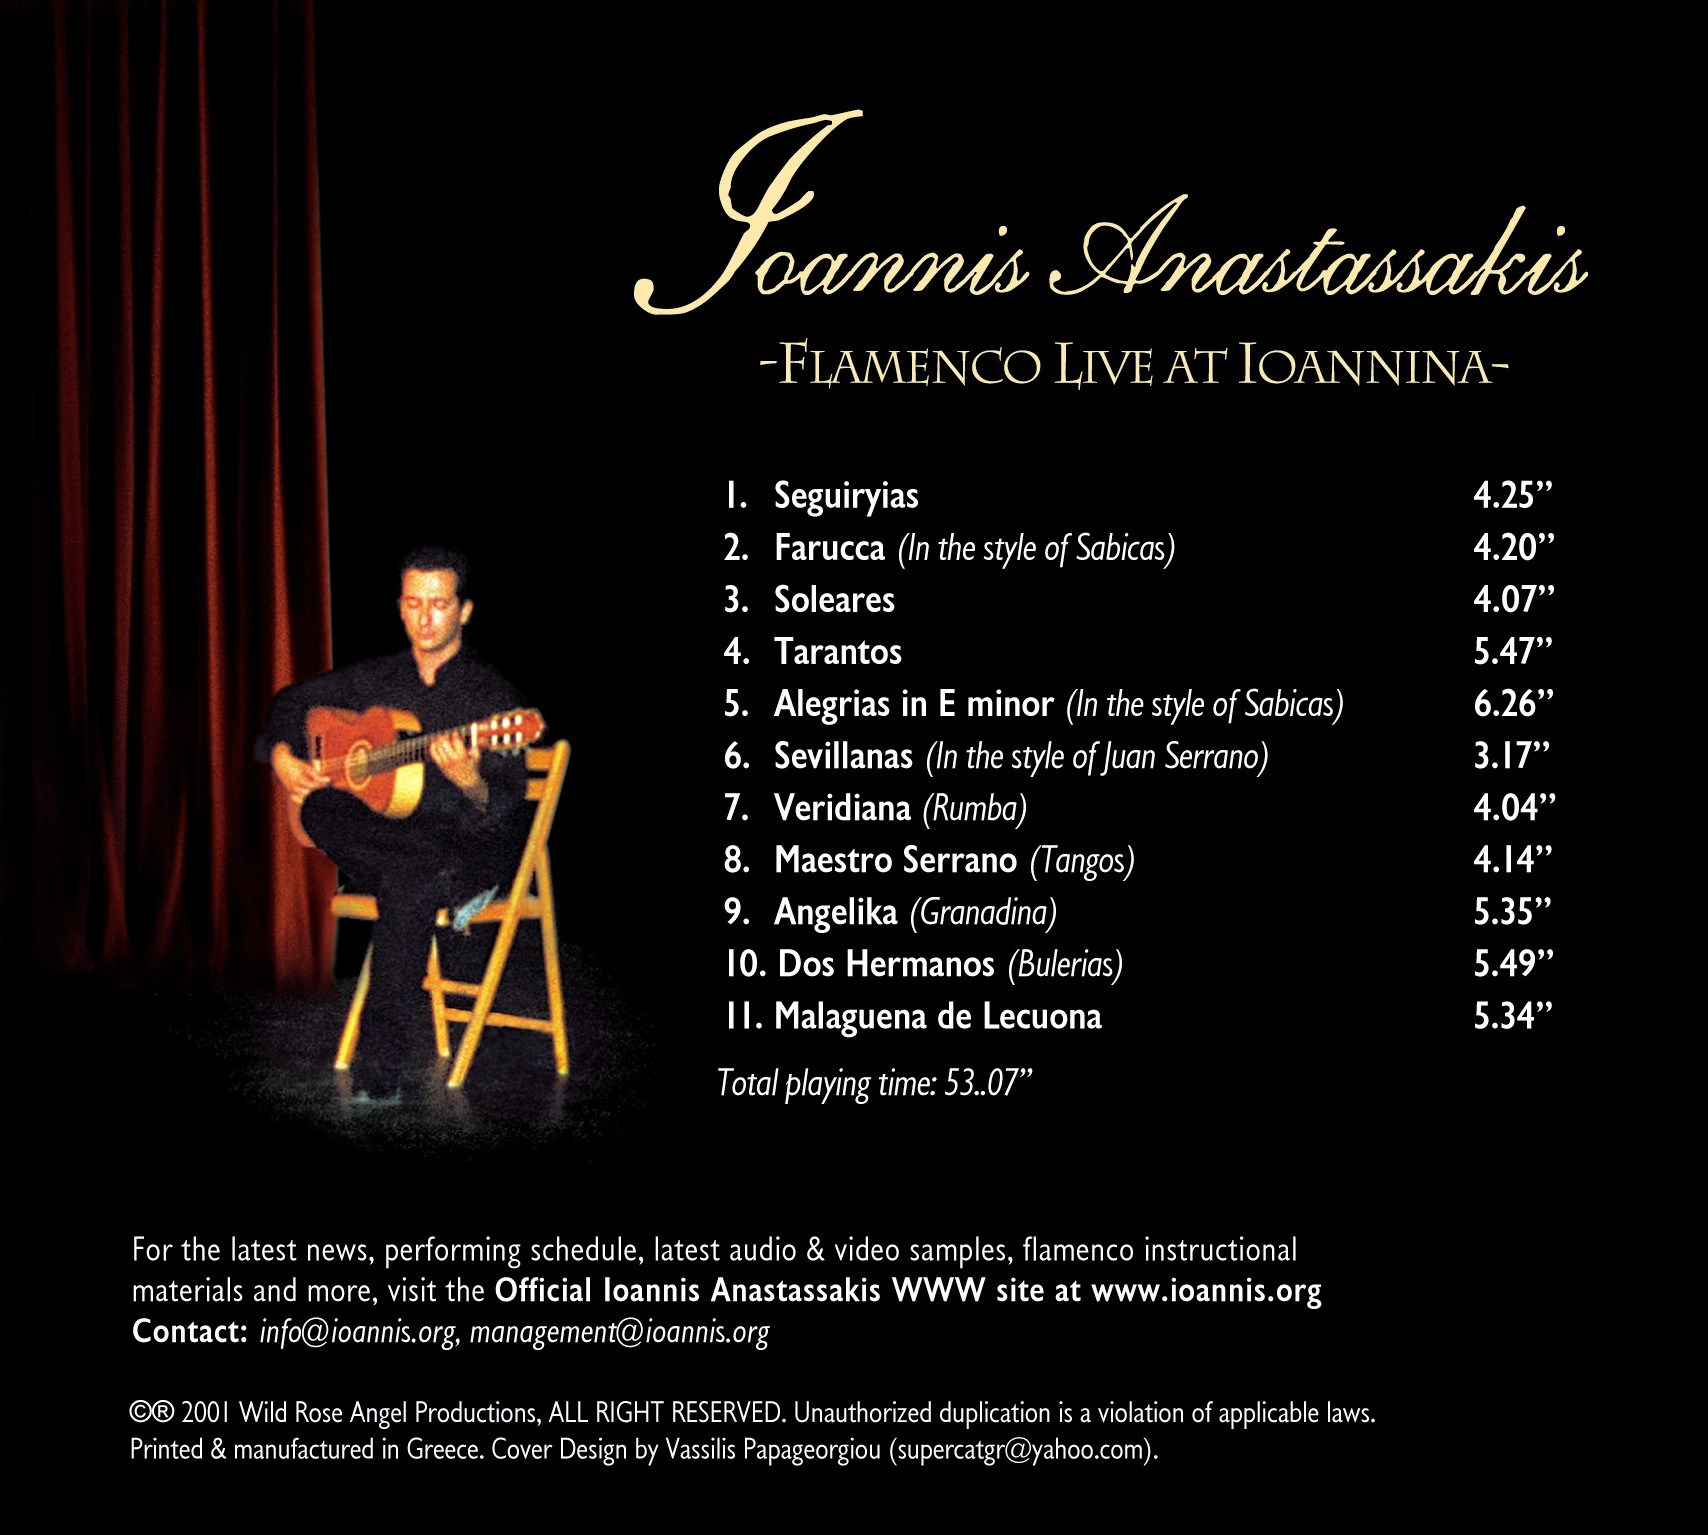 ioannis-anastassakis-flamenco-live-at-ioannina-2004-cd-back